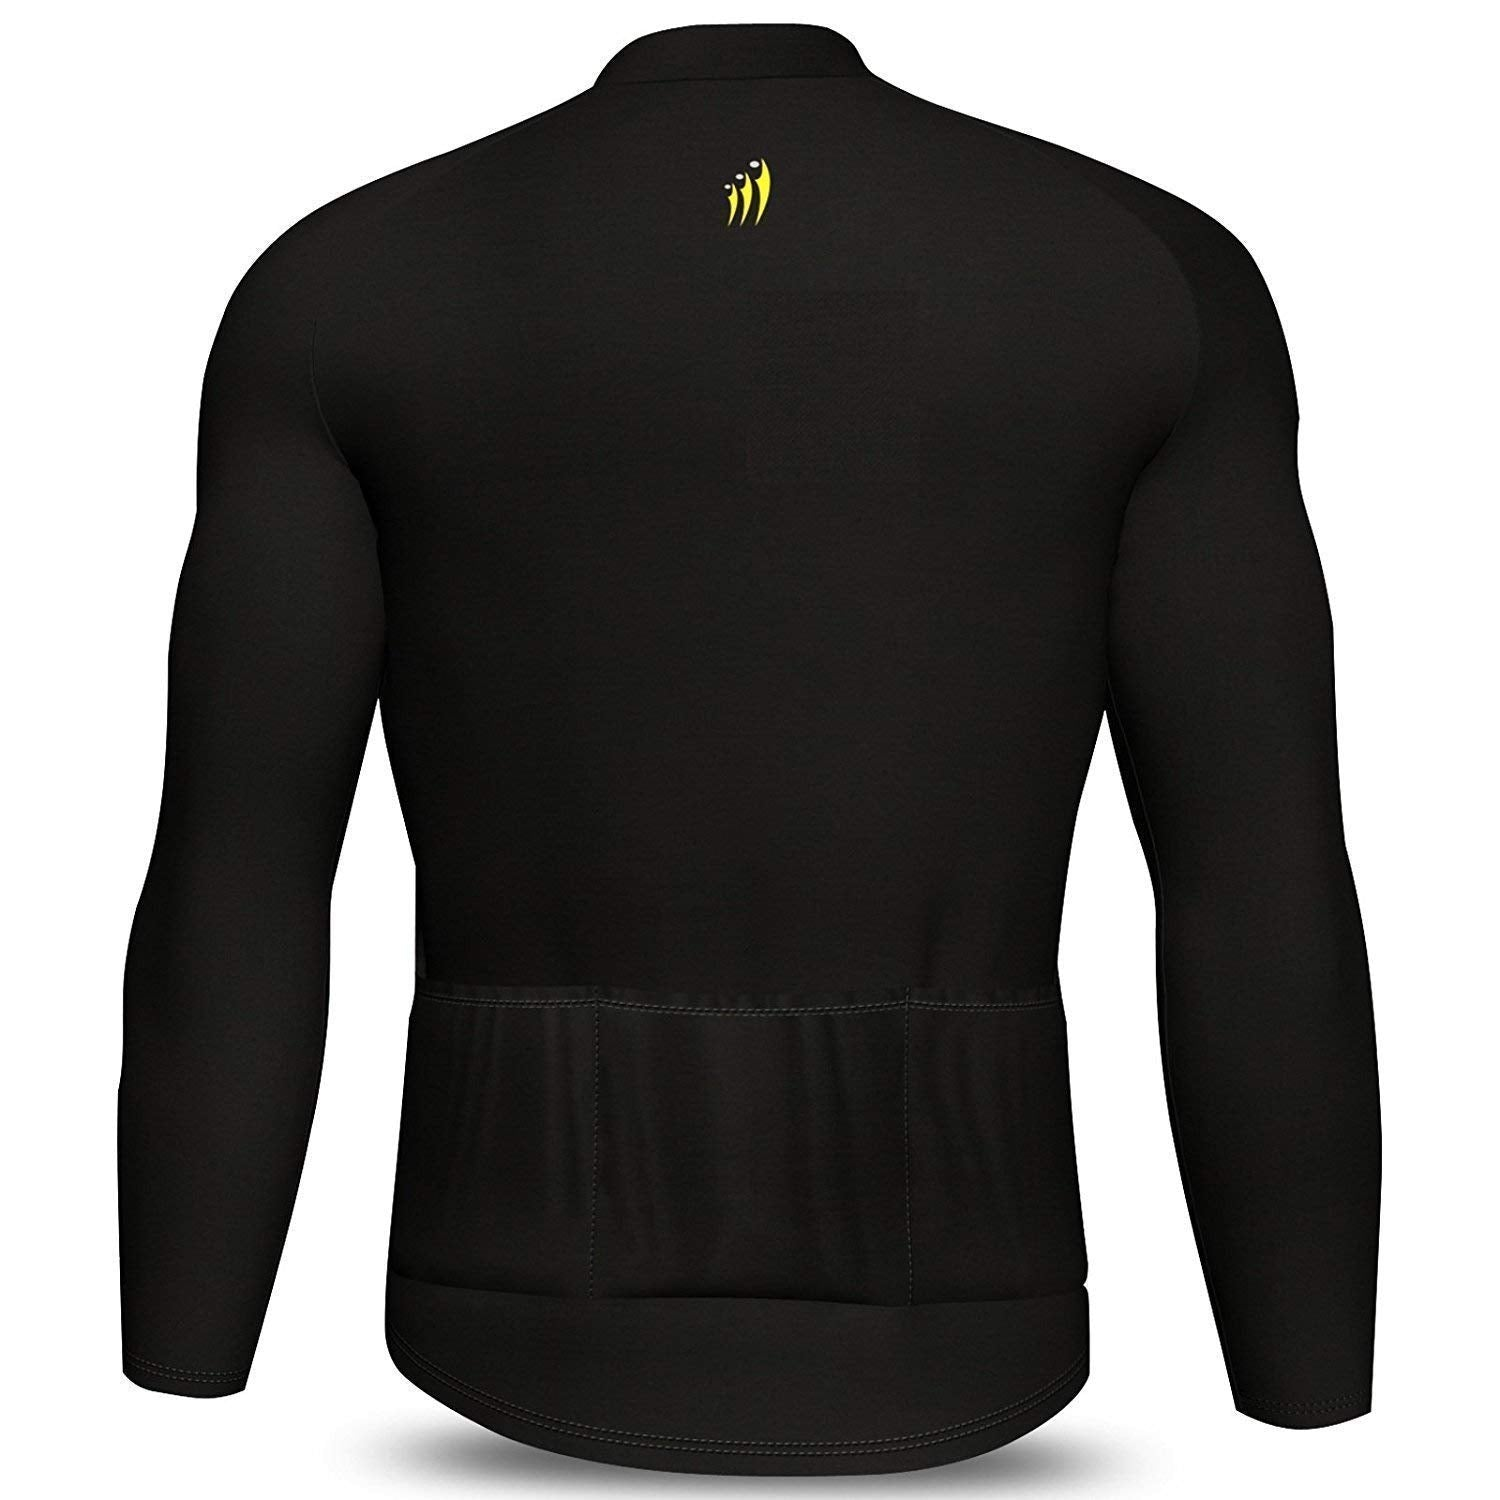 DiDOO Men's Classic Winter long sleeve thermal cycling jersey